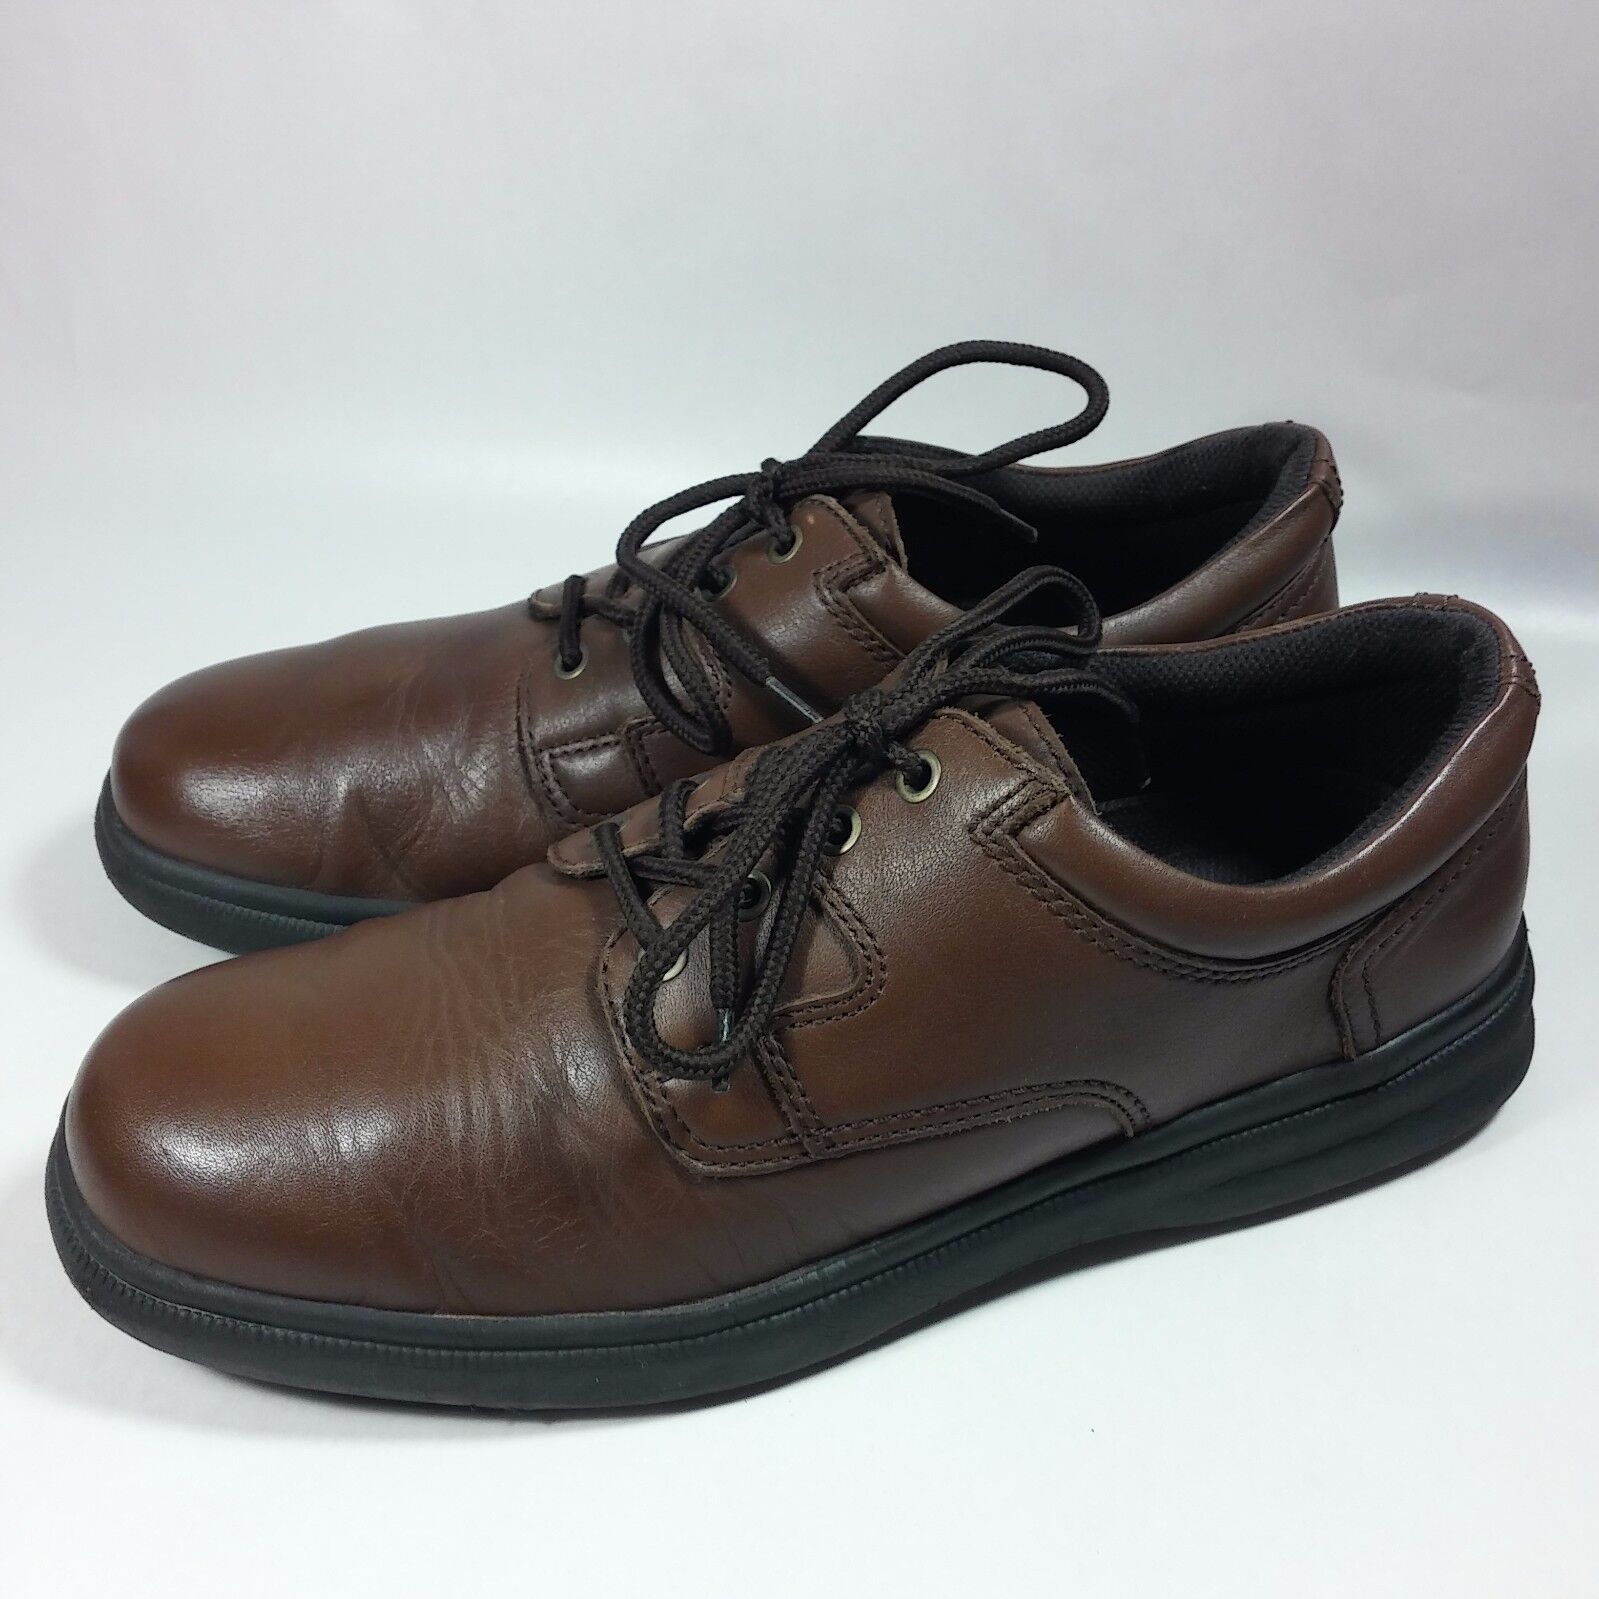 Men's Hush Puppies Comfort Curve Casual Comfort Oxford Brown Leather Shoes-11 M